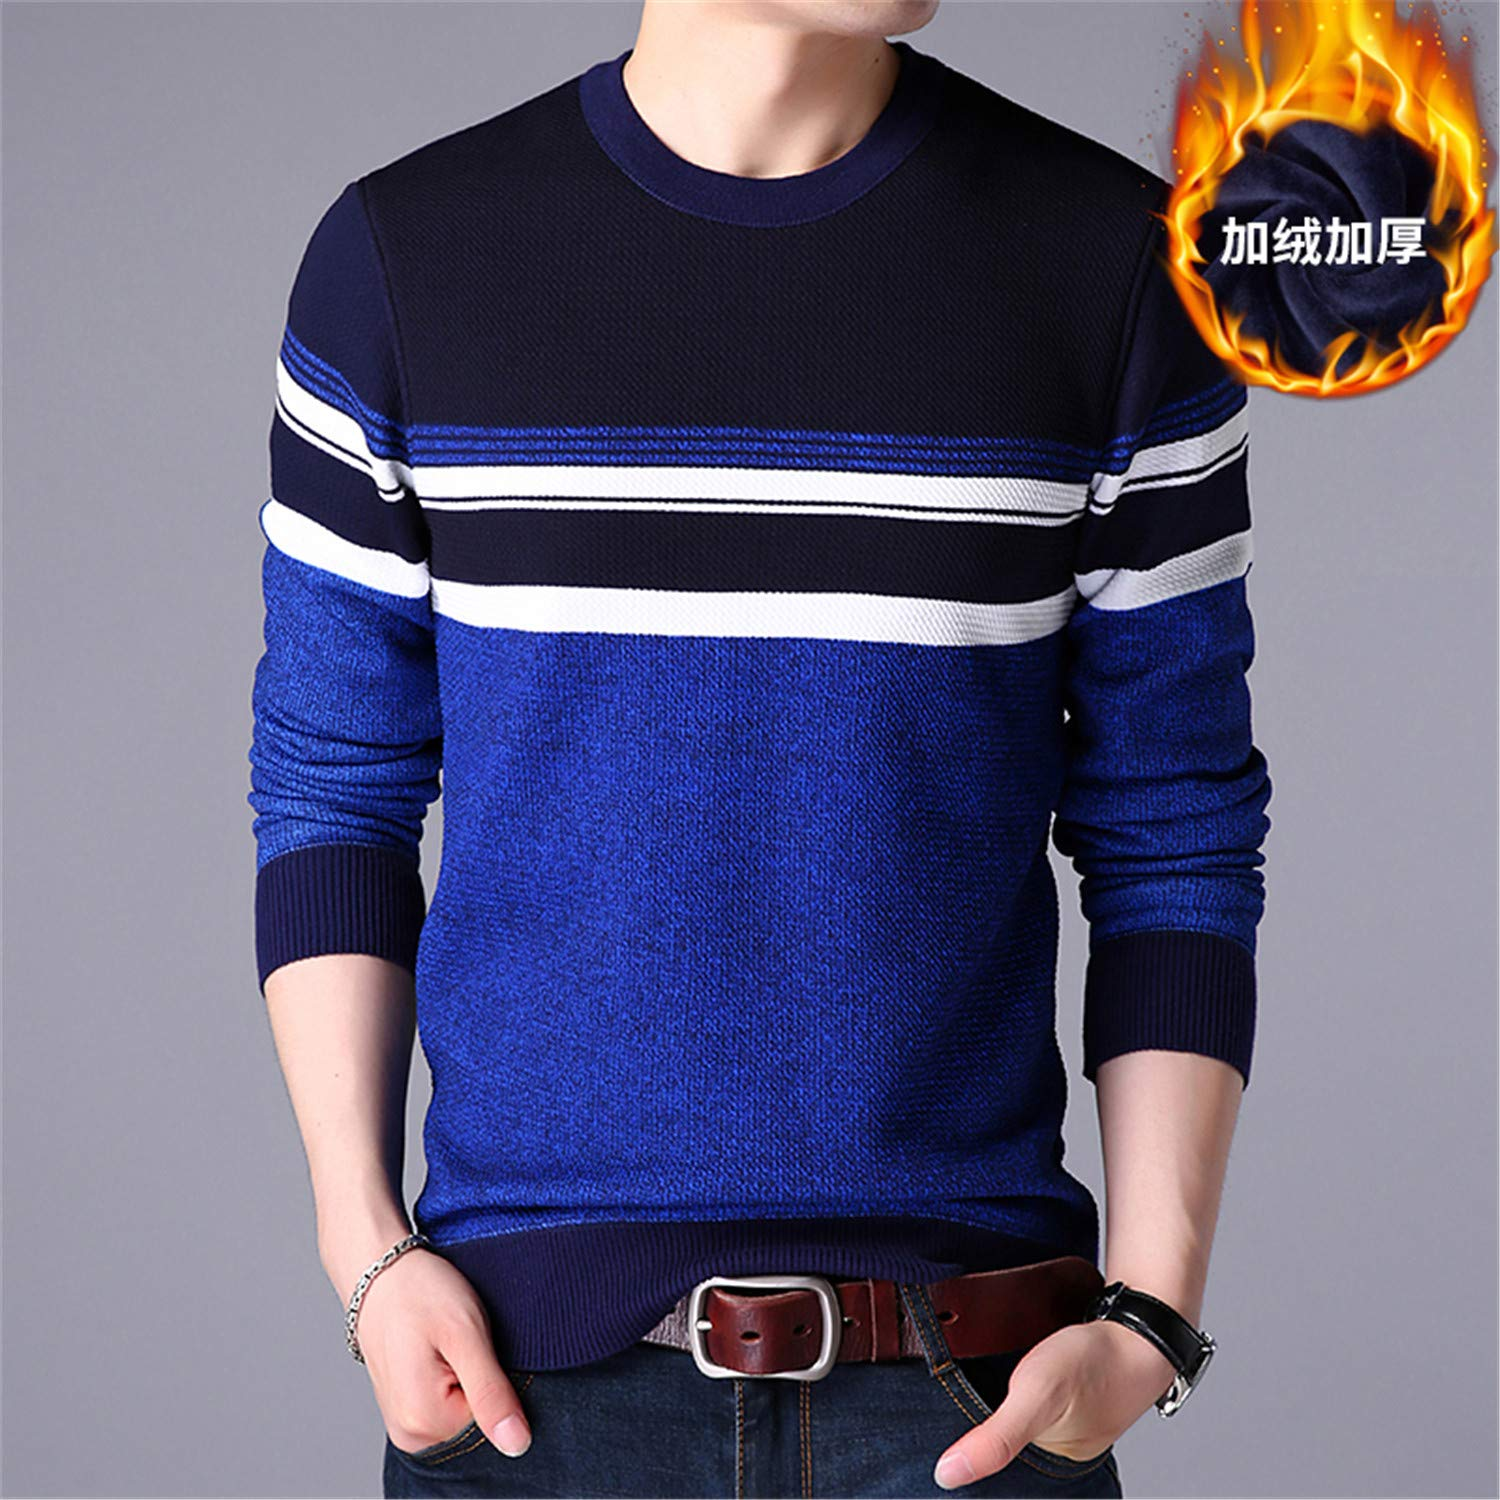 Giles Abbot Men Sweater Winter Round Collar Neck Knitting Sweaters Male Casual Cashmere Pullovers